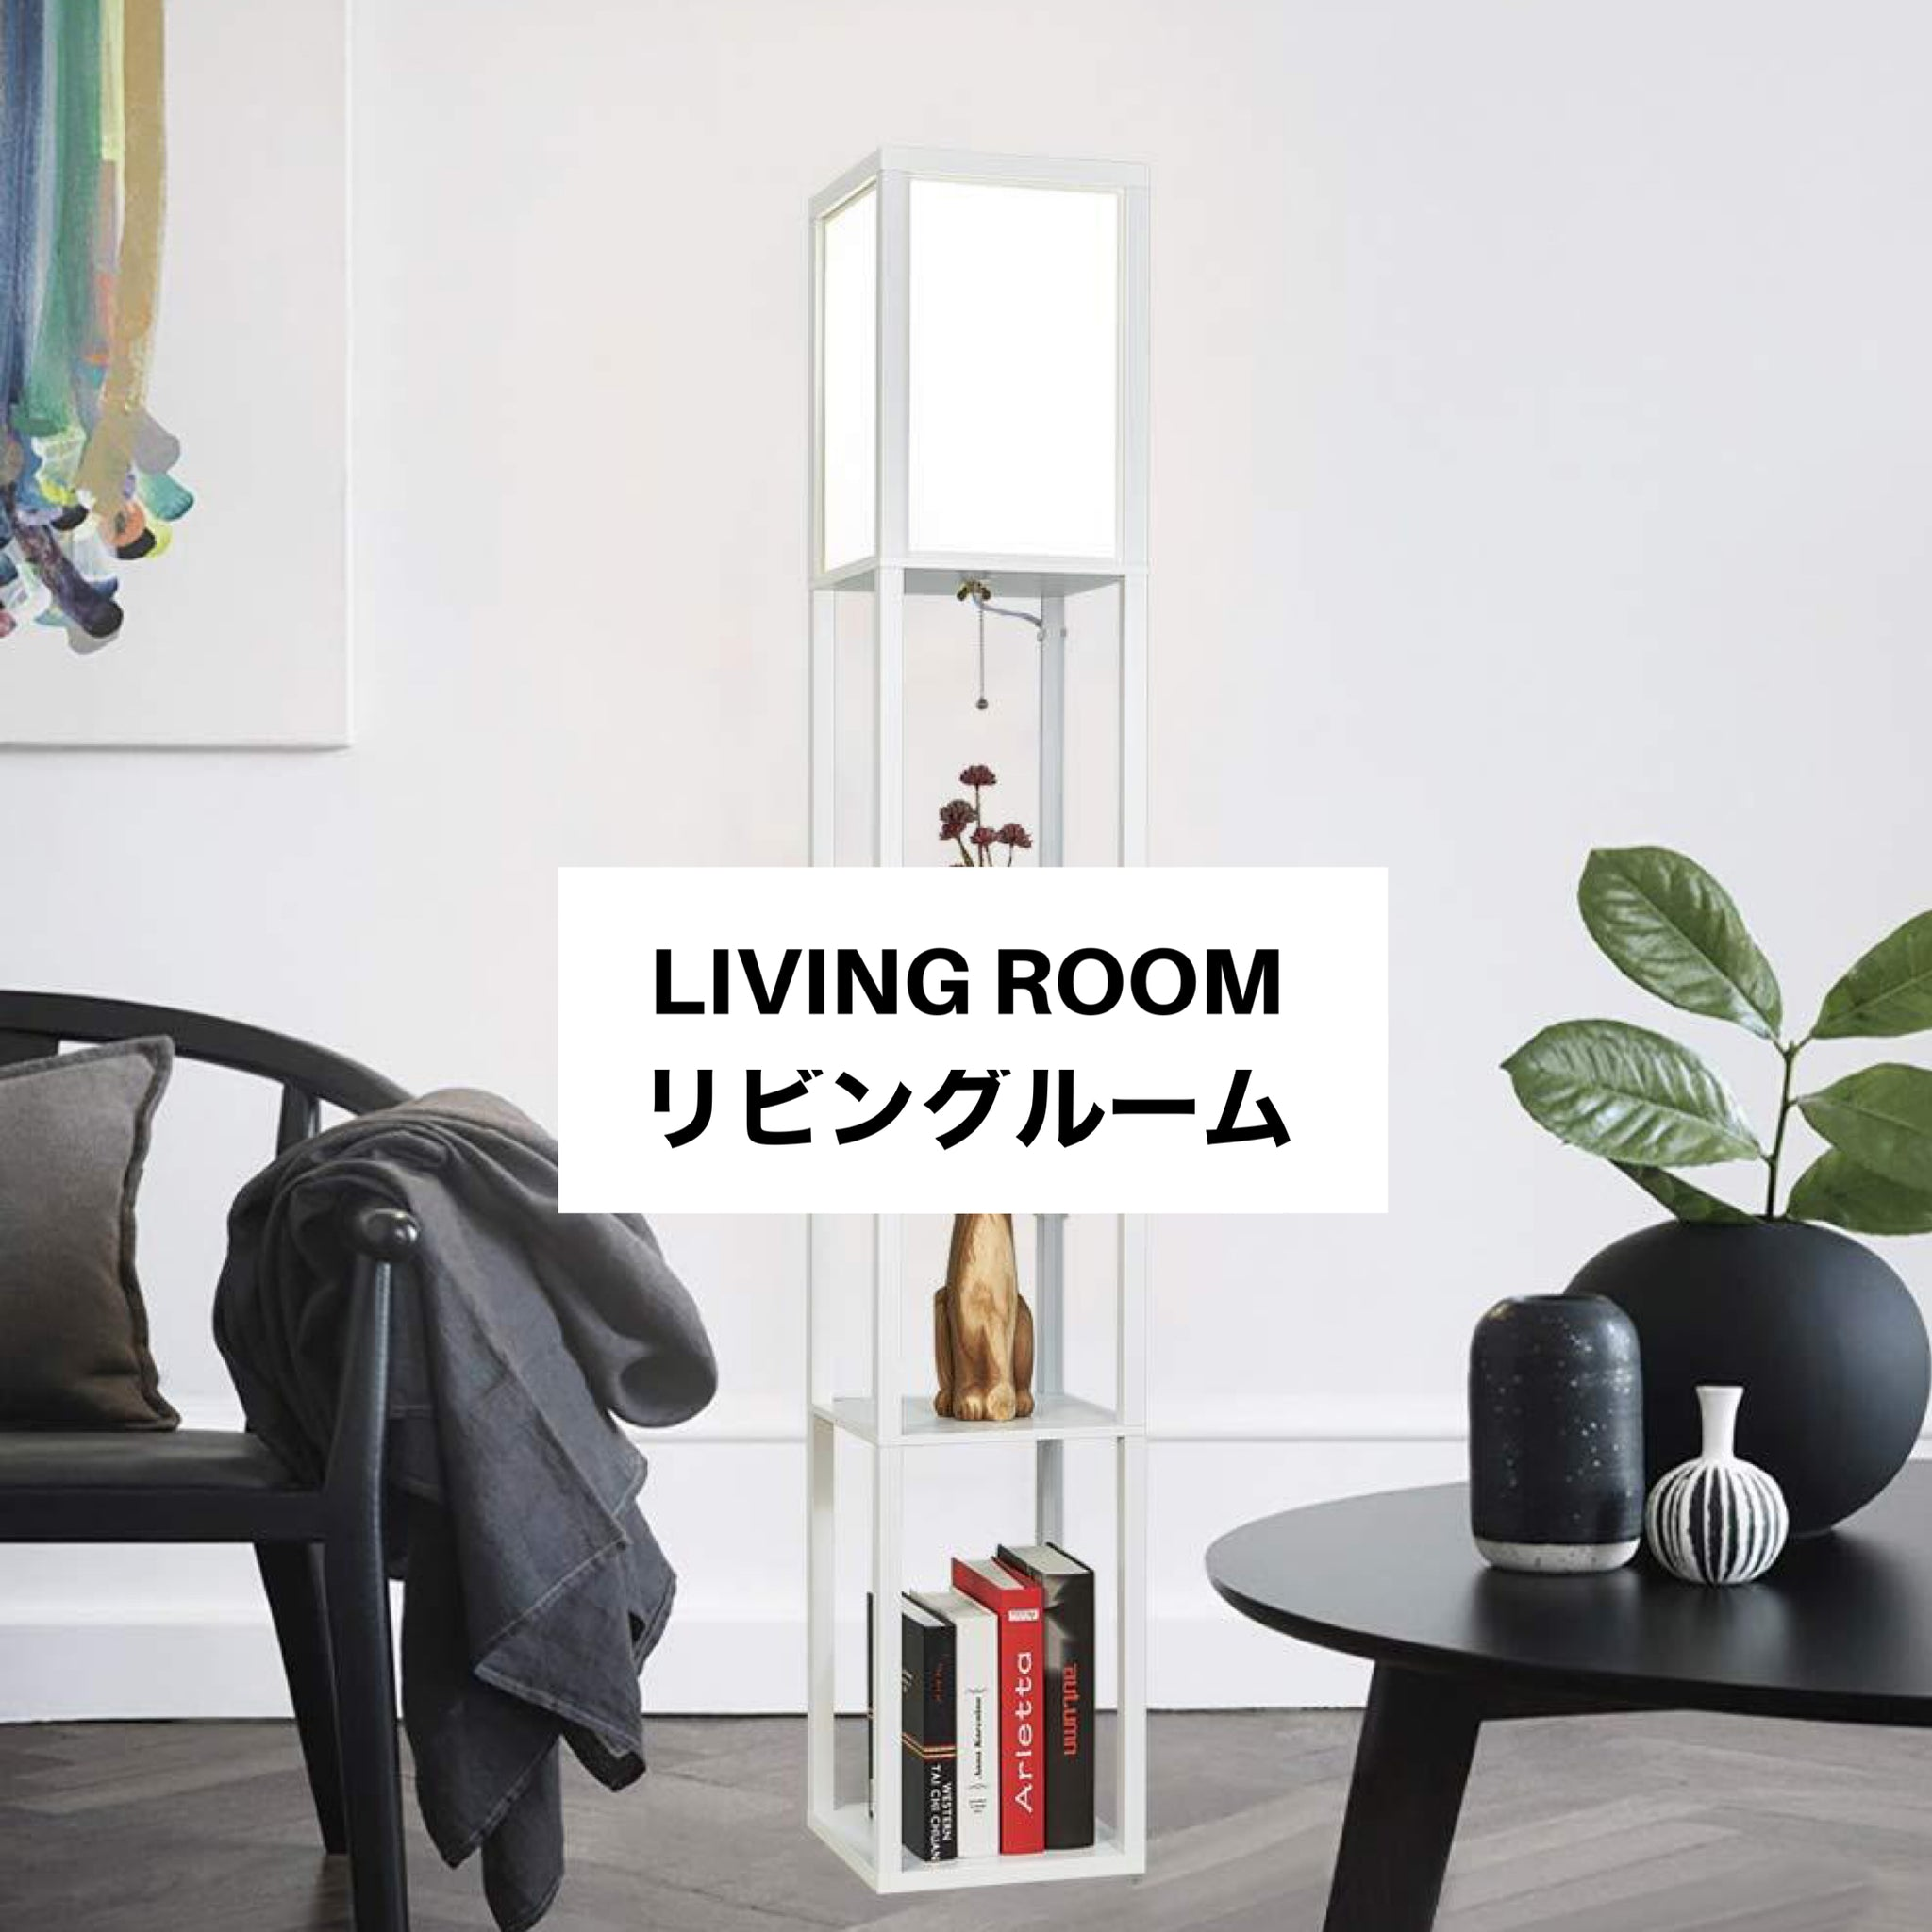 miTeigi | Living Room | Japanese Apparel and Home Decor Retail Shopping